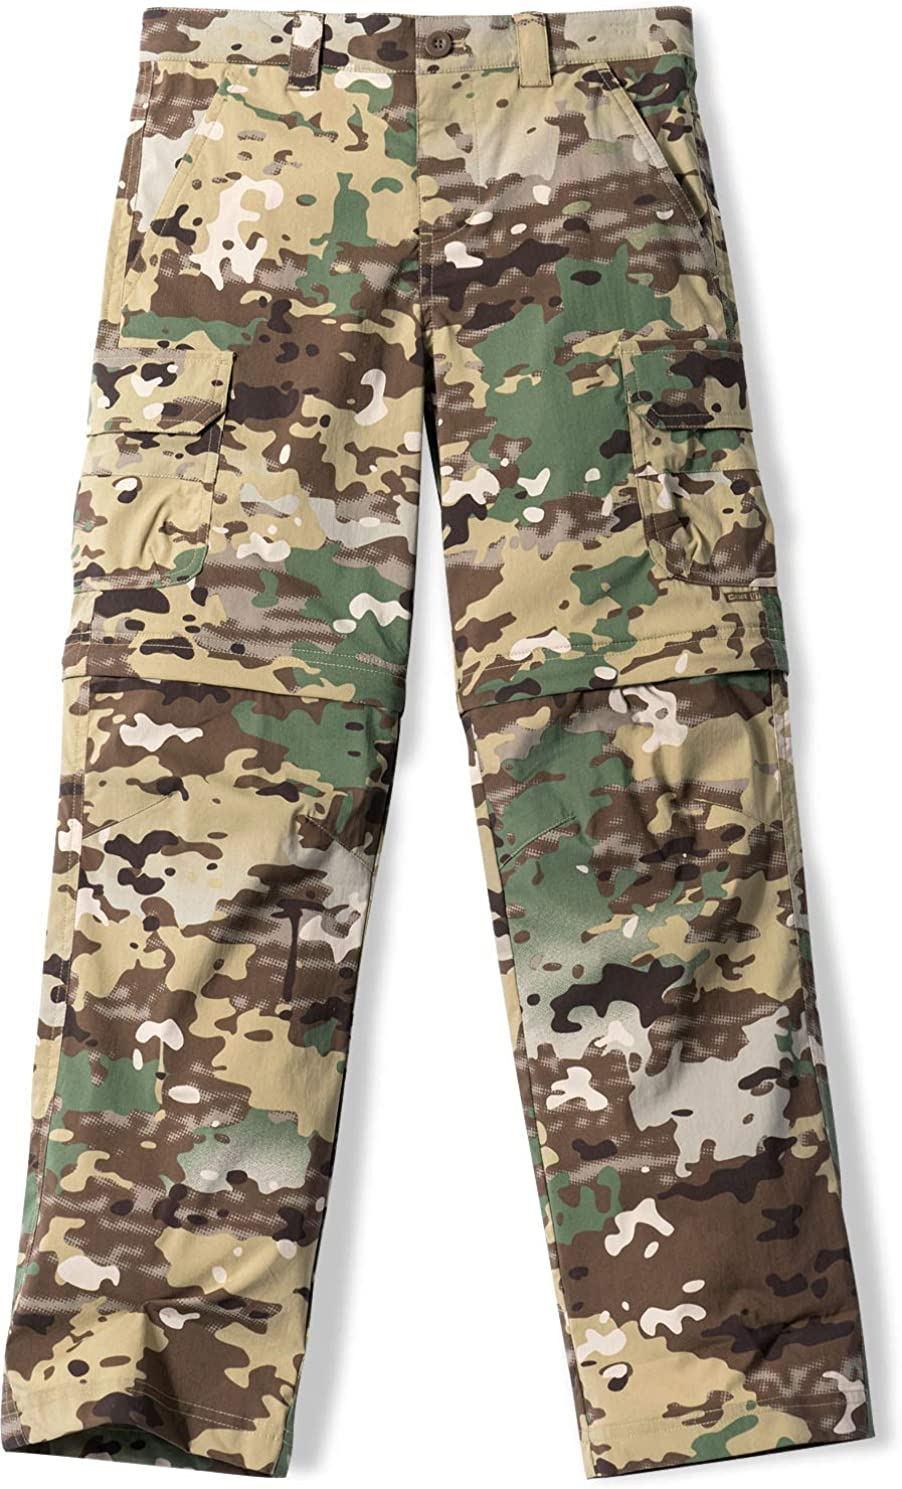 Small Boy Convertible bxp432 8 - Utility Camo CQR Kids Boys and Girls Pants Youth Hiking Adventure Convertible Zip Off Stretch Camping UPF 50+ Quick Dry Cargo Trousers